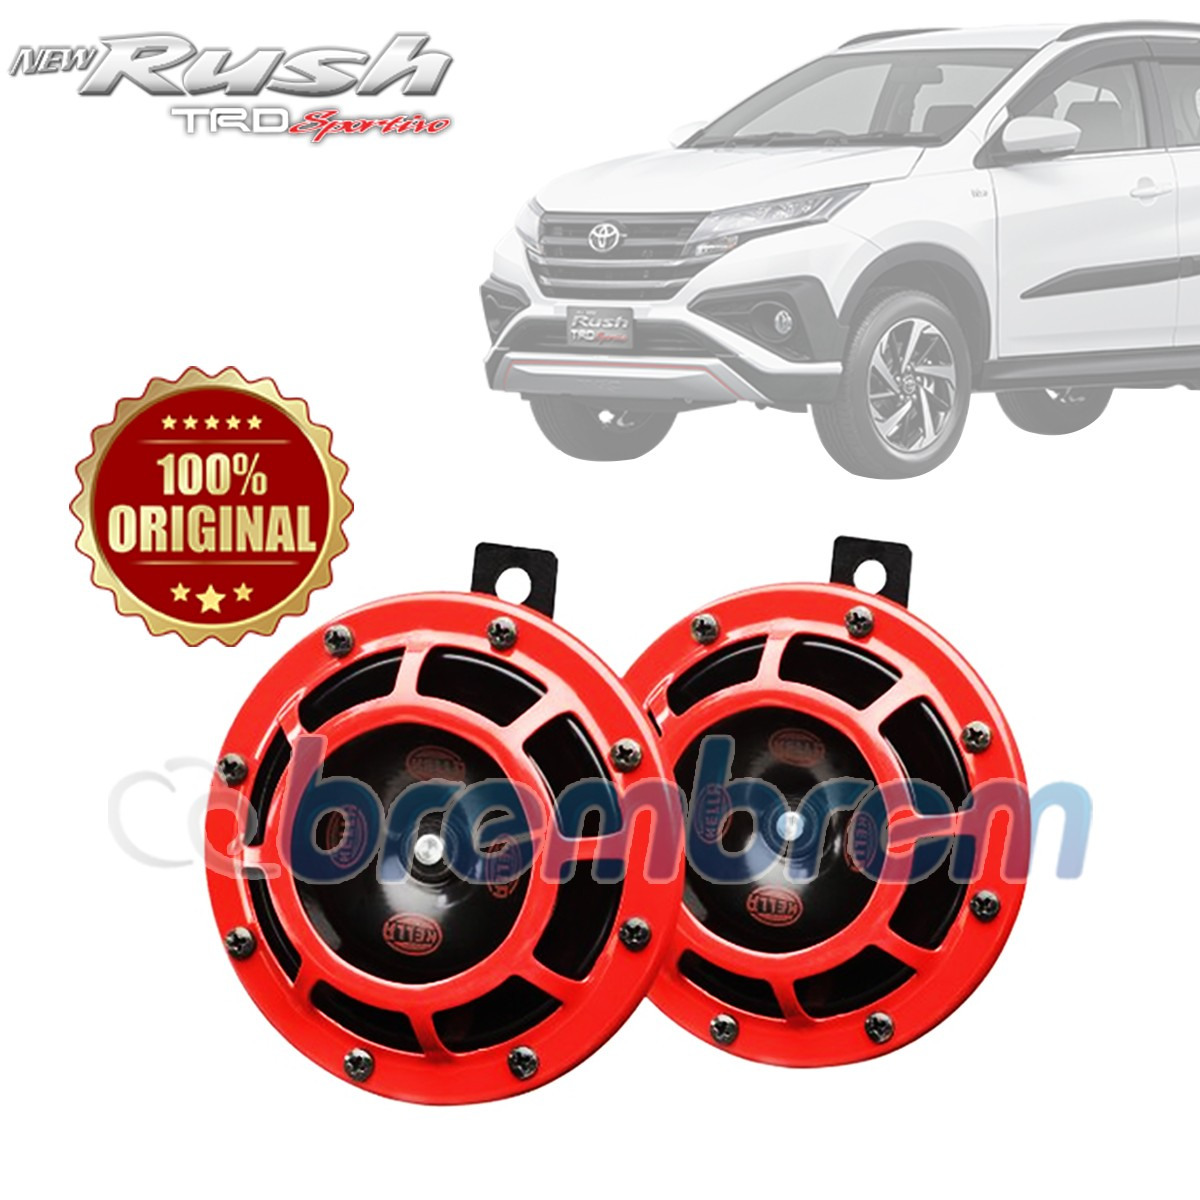 HELLA RED SUPER TONE - KLAKSON MOBIL TOYOTA ALL NEW RUSH